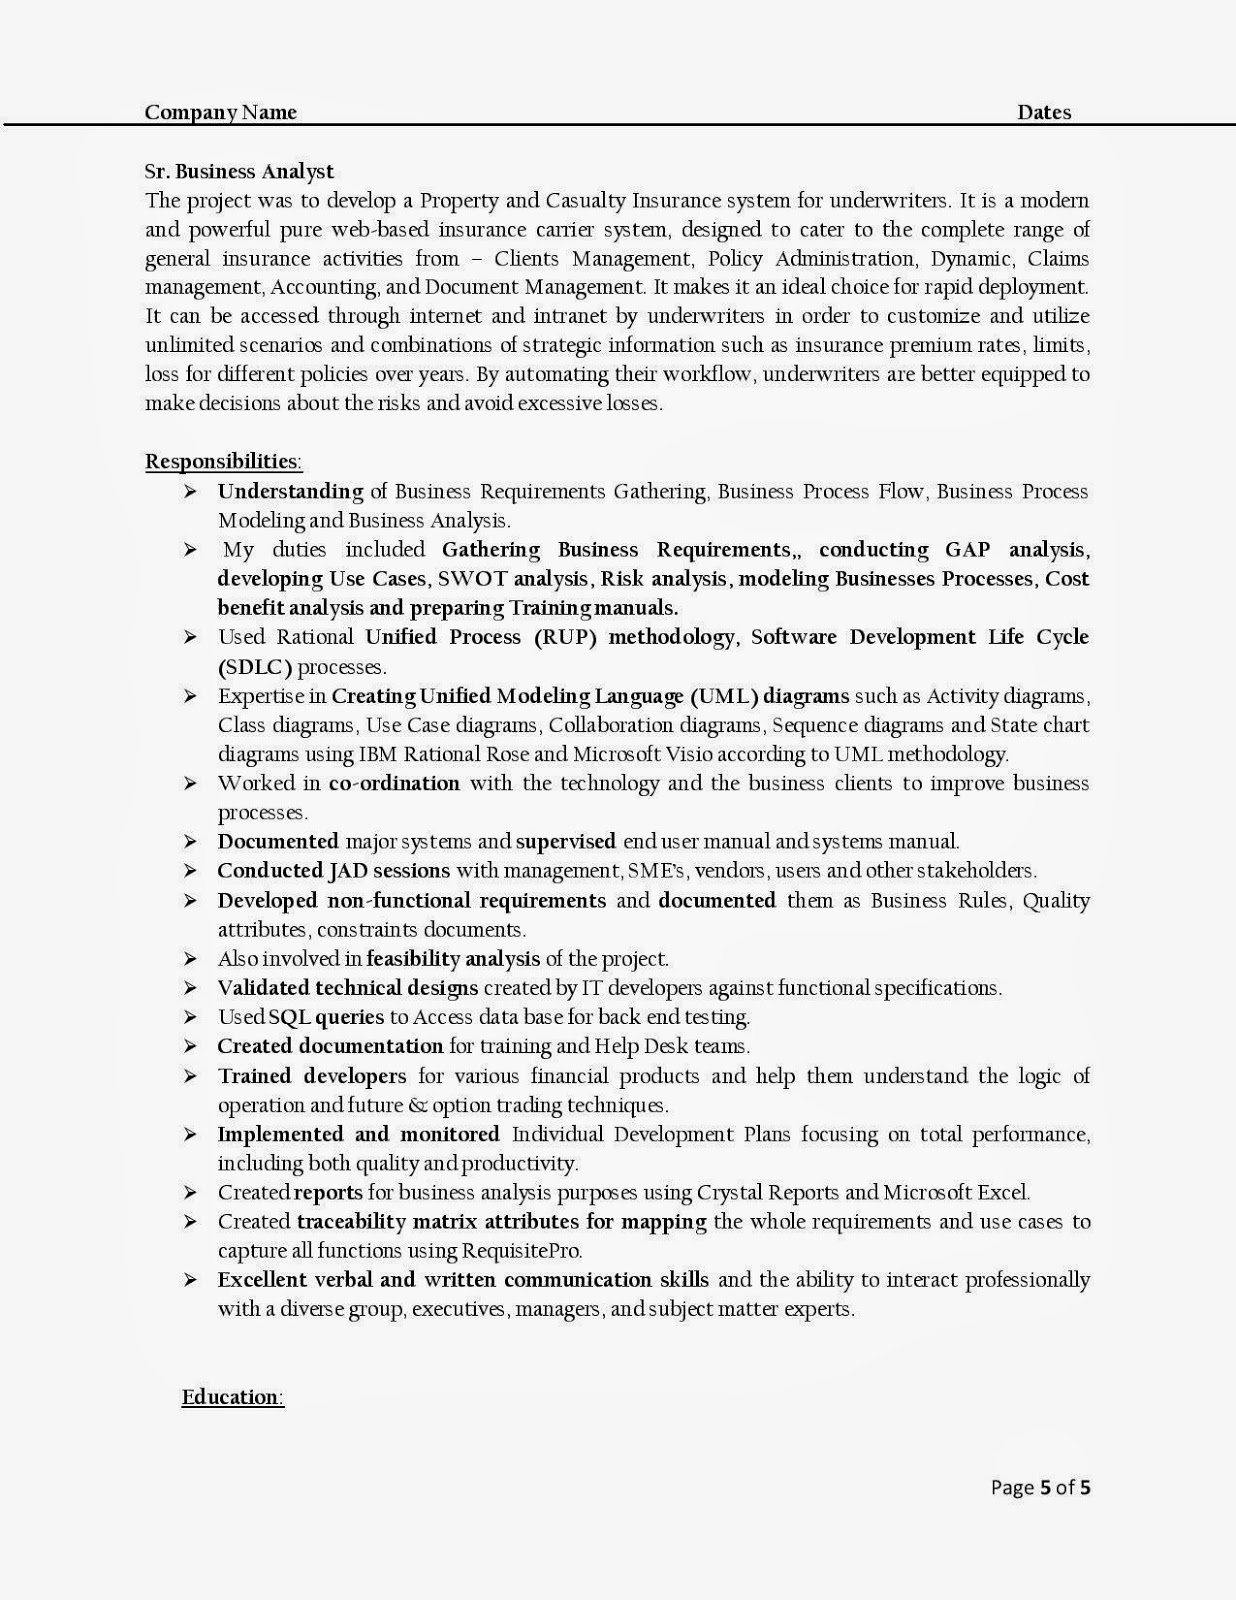 Sample Qa Resumes Resume Format Download Pdf Sample Dancer Cover Letter  Resume Template For Project Manager